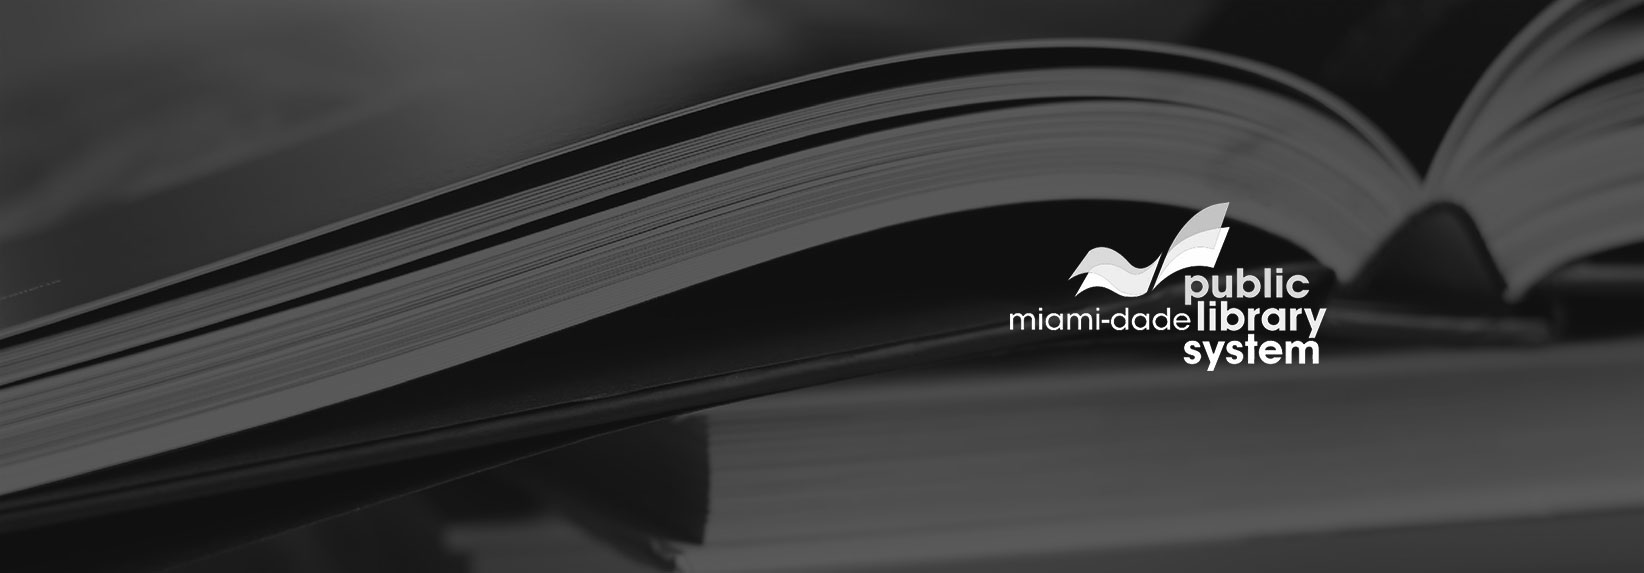 Miami-Dade Public Library System Simplified Infrastructure in Less Than 24 Hours